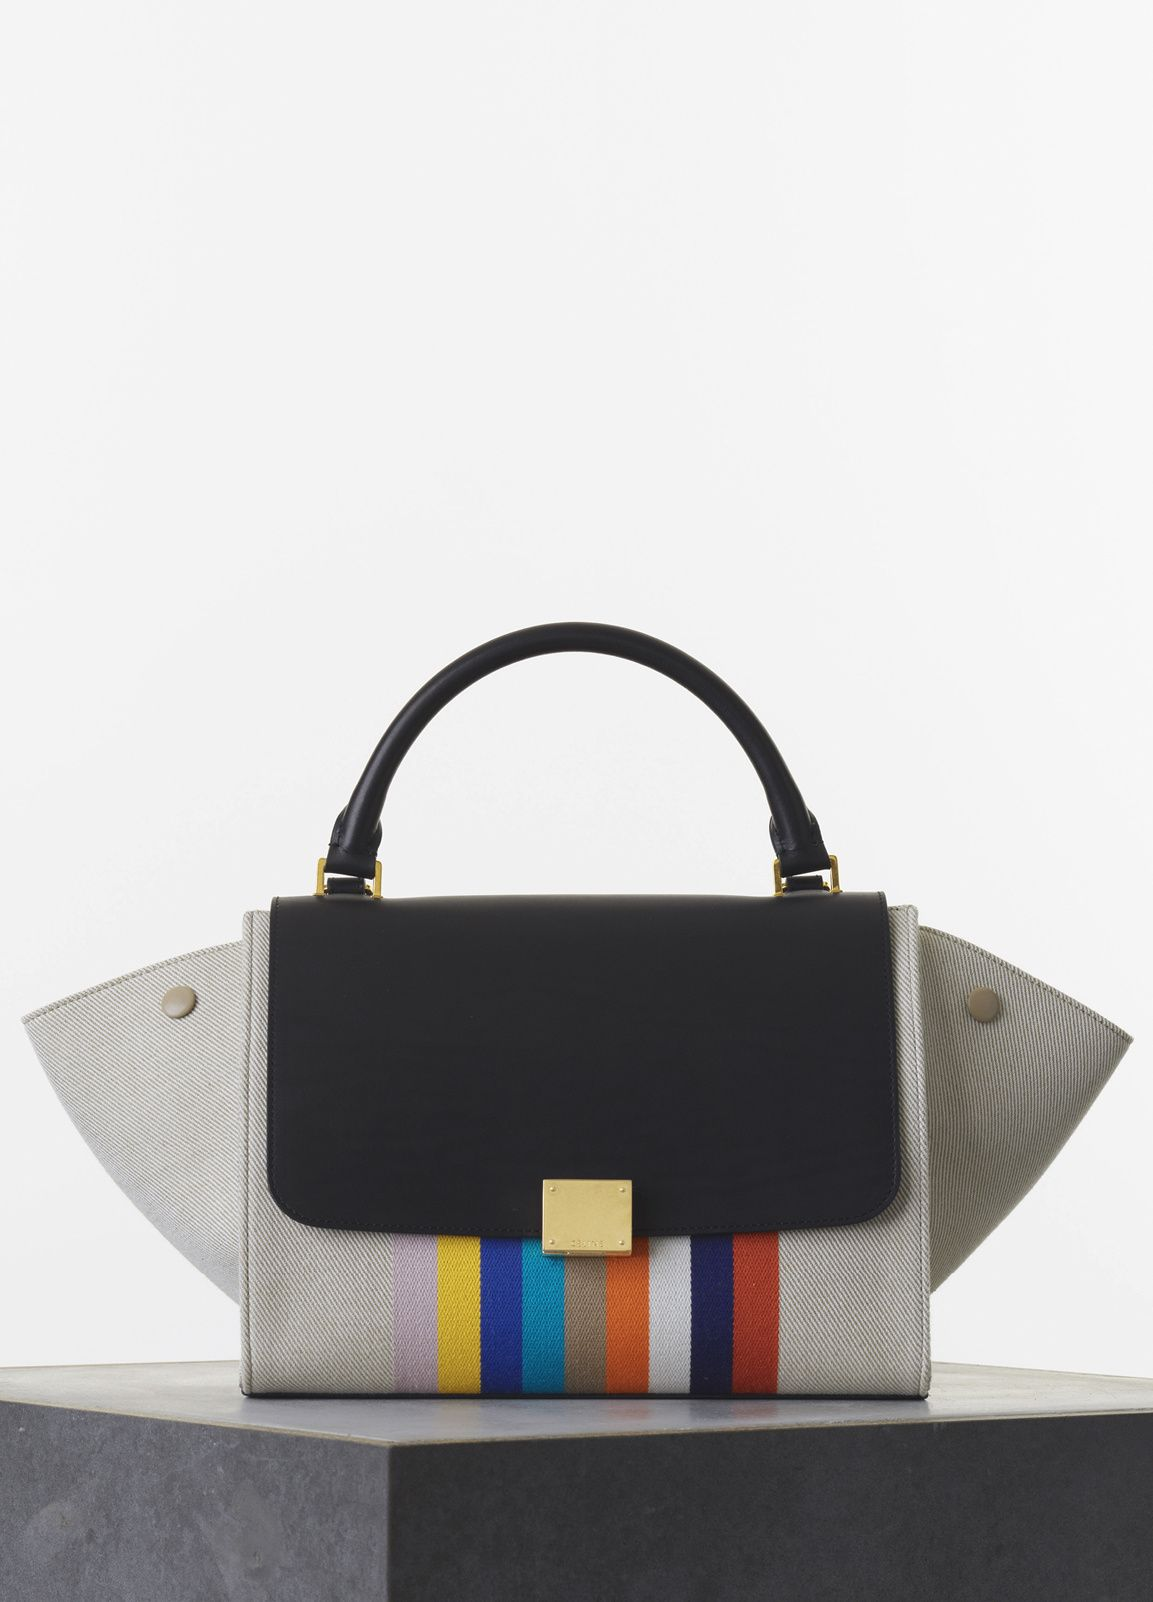 7cf76ec4ecc9 Spring   Summer Collection 2015 collections - Handbags   CÉLINE ...